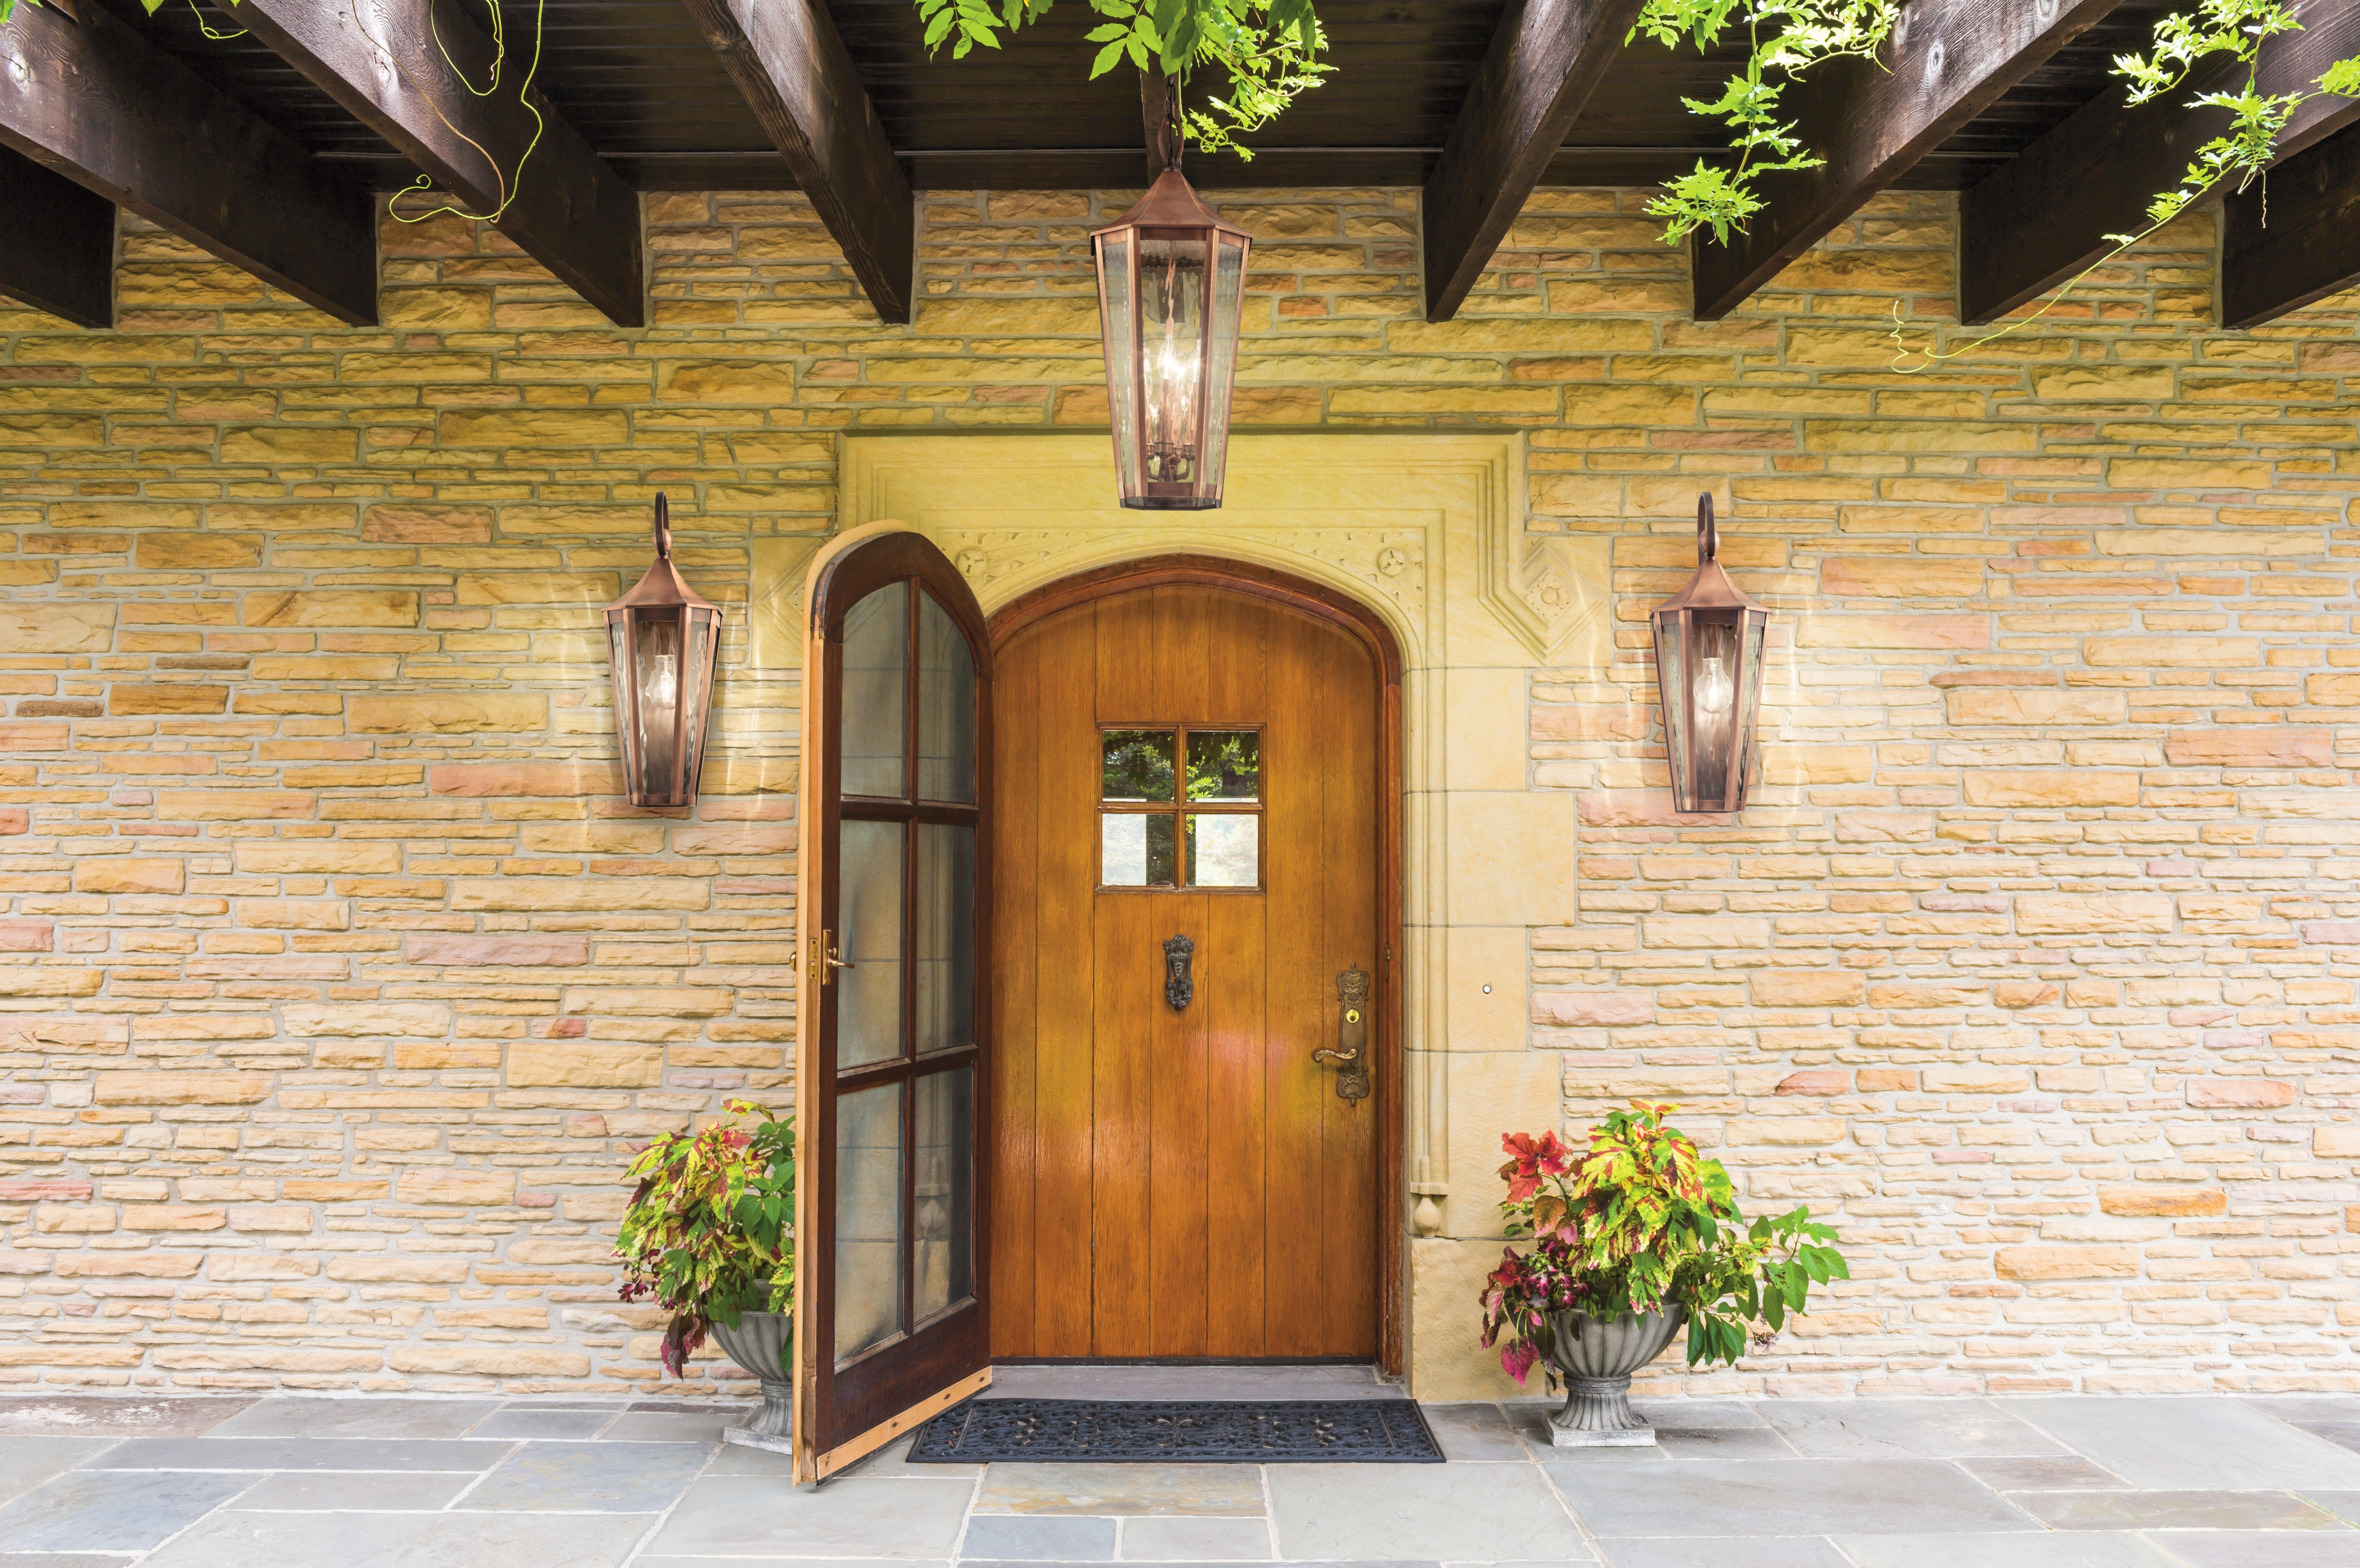 Outdoor Front Porch Lights – Outdoor Lighting Ideas With Most Current Outdoor Lanterns For Front Porch (View 17 of 20)